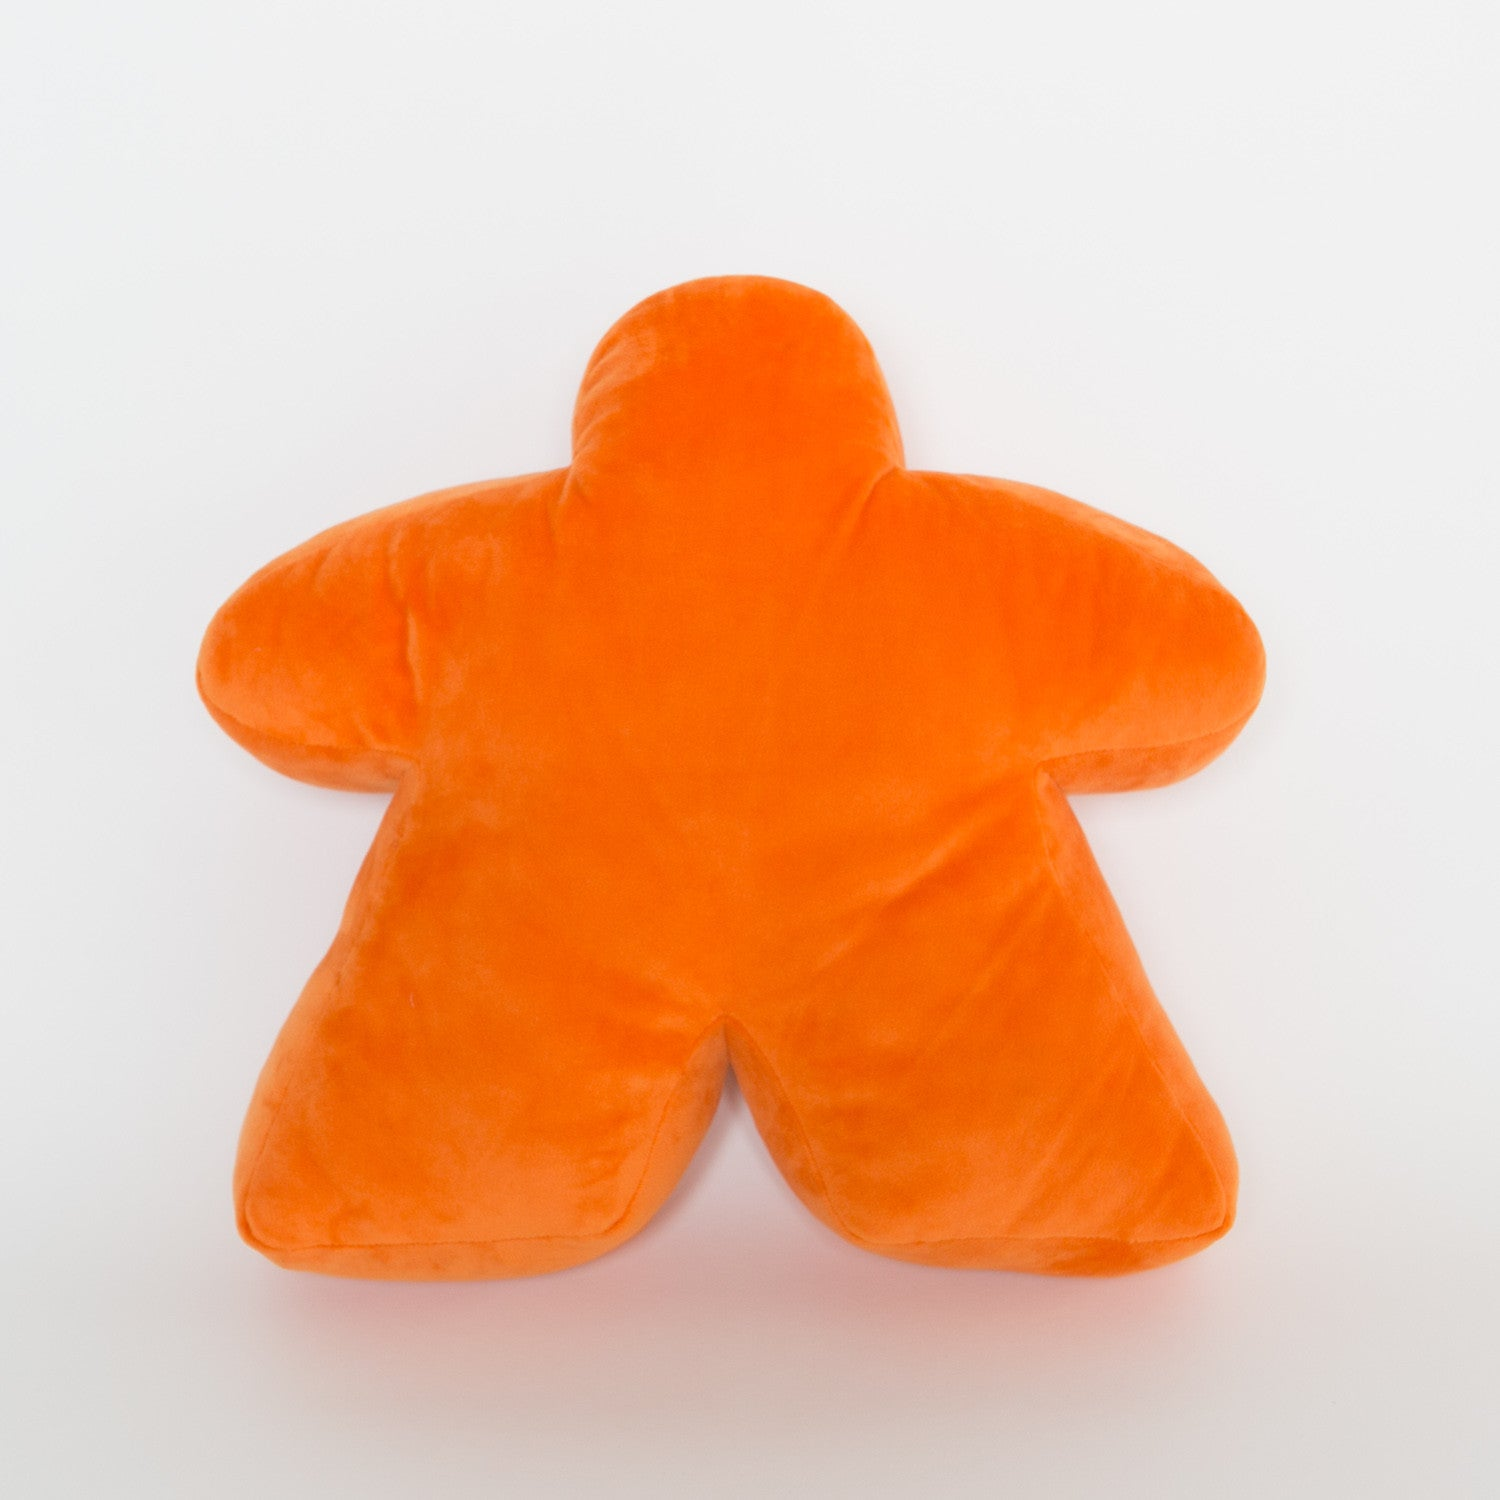 The Orange Meepillow